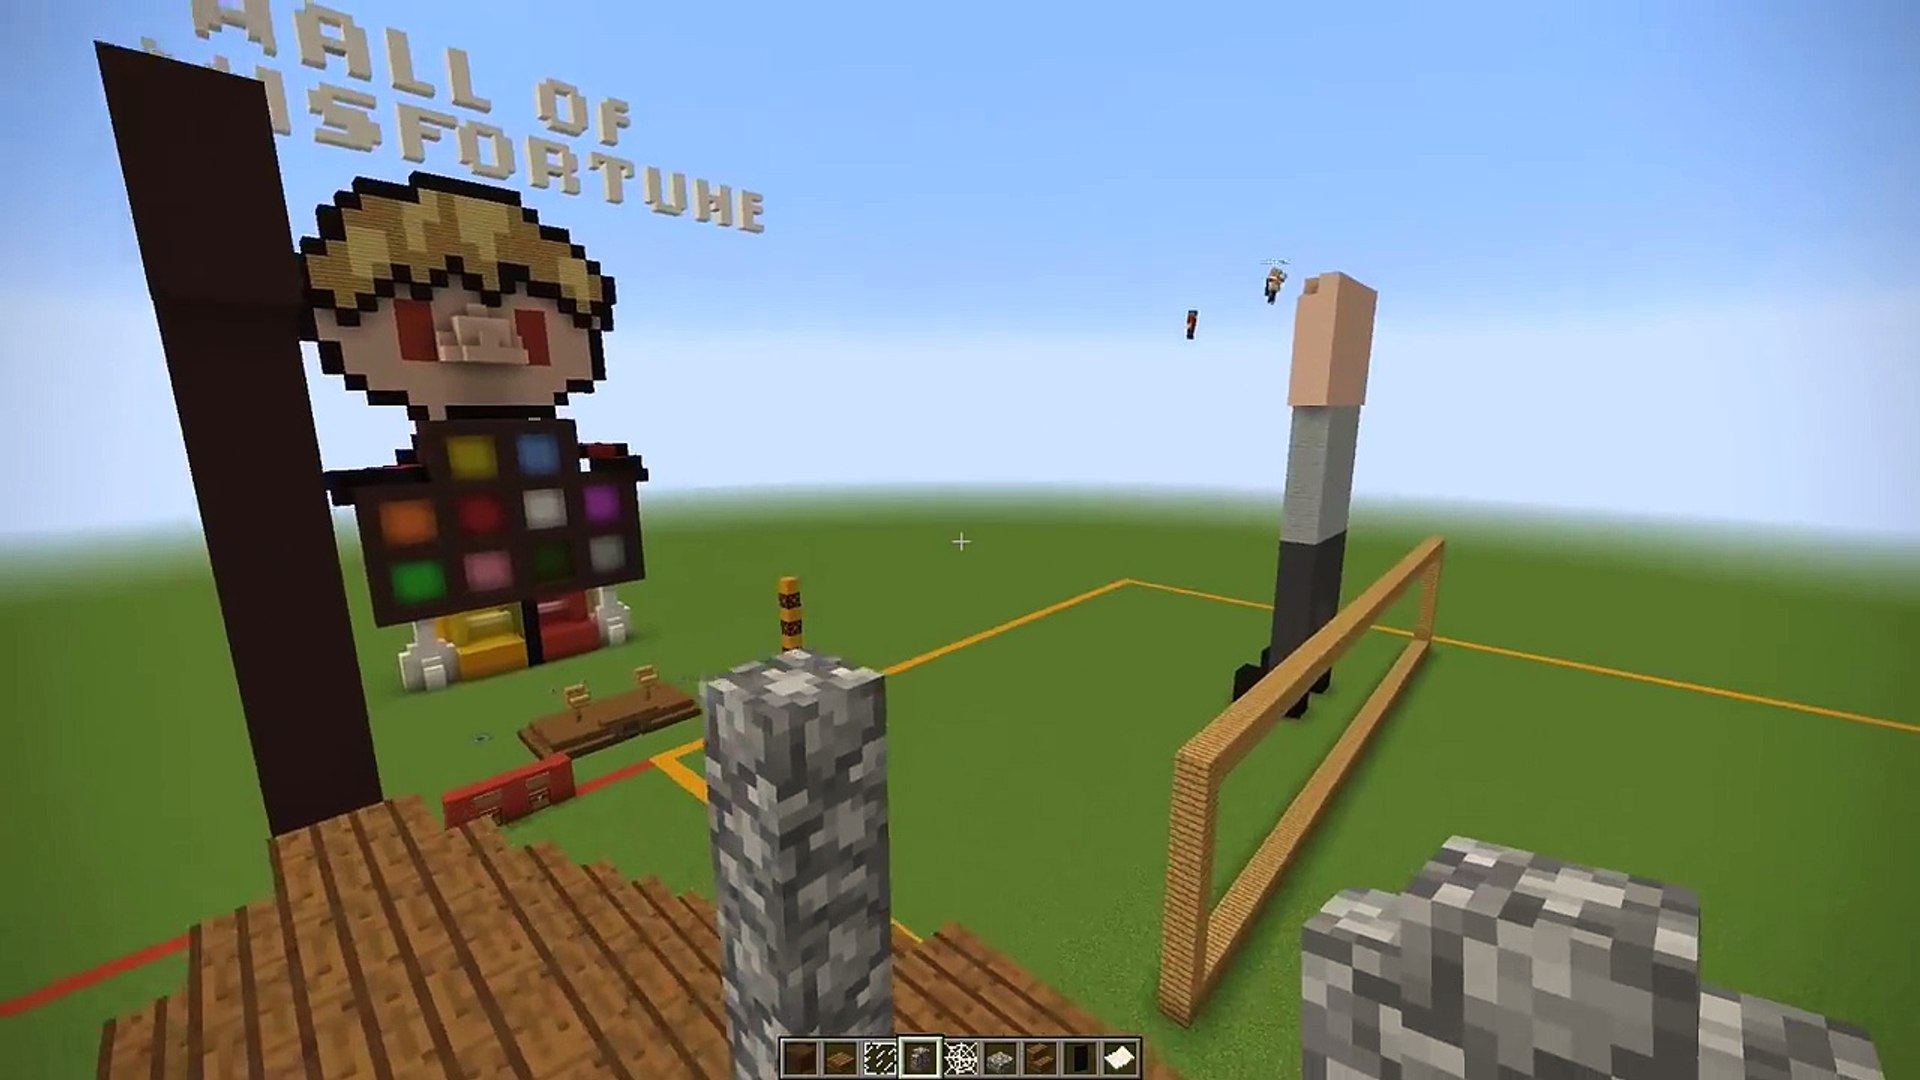 Npc Grian Does Minecraft Build Swap Video Dailymotion